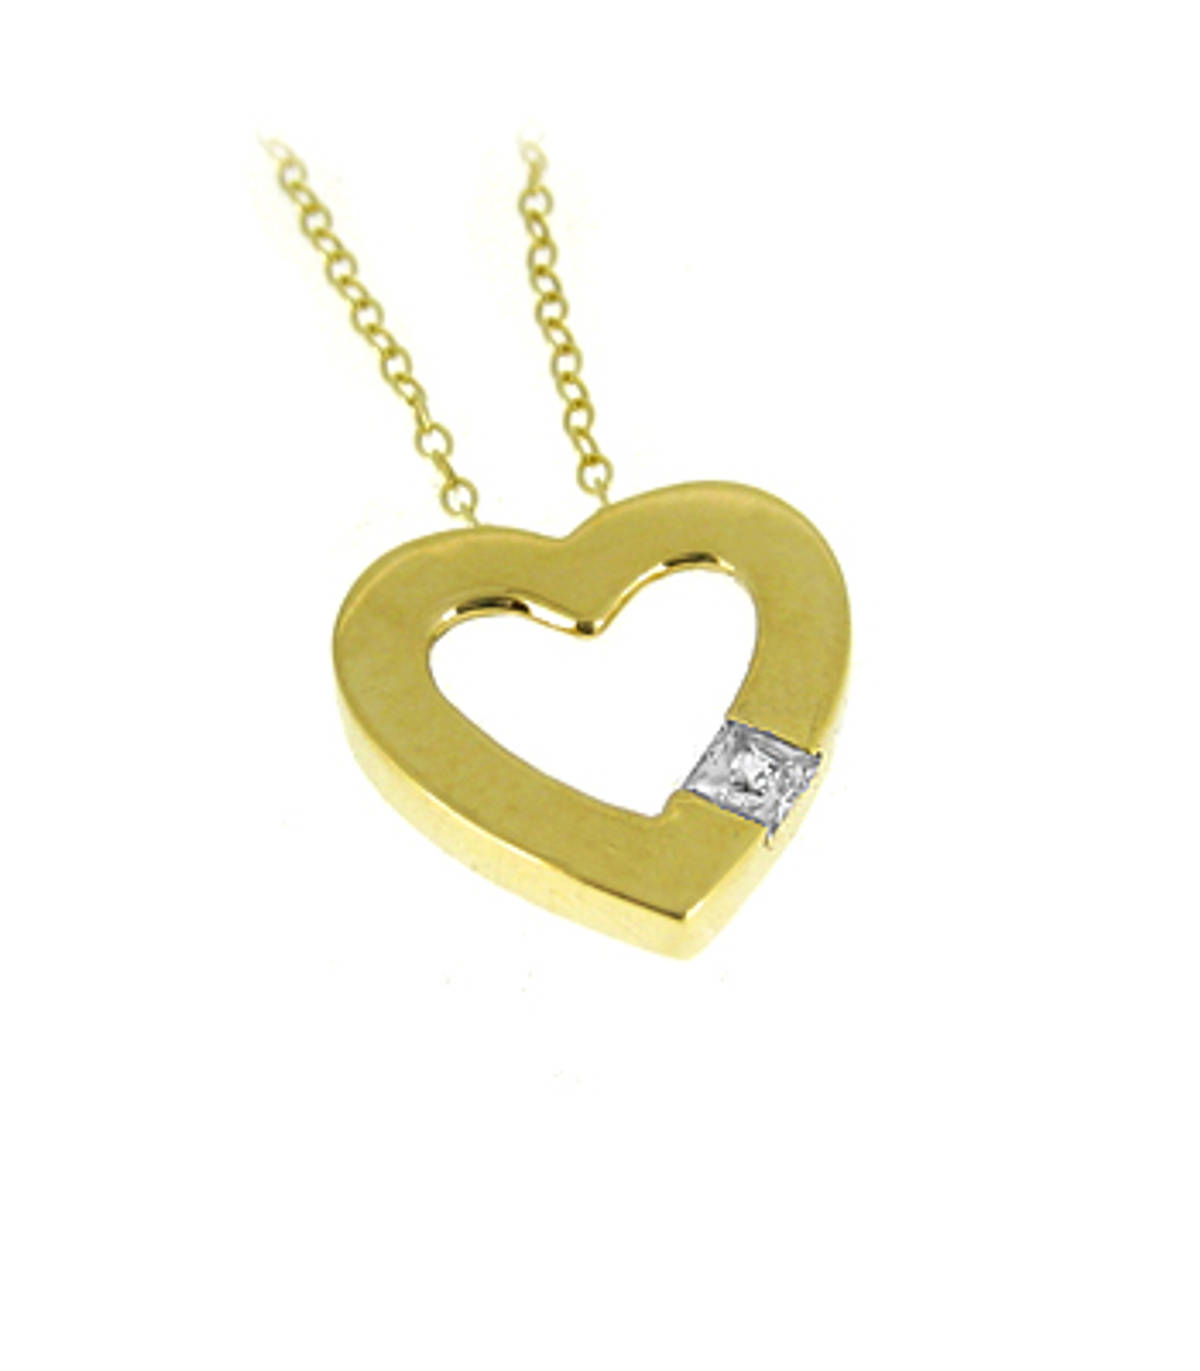 "9k yellow gold open heart CZ pendant on 9k yellow gold 18"" chain 9k yellow gold 18"" chain Metal: 9k yellow gold Length  1.5cm  Width  1.5cm Made in Ireland"